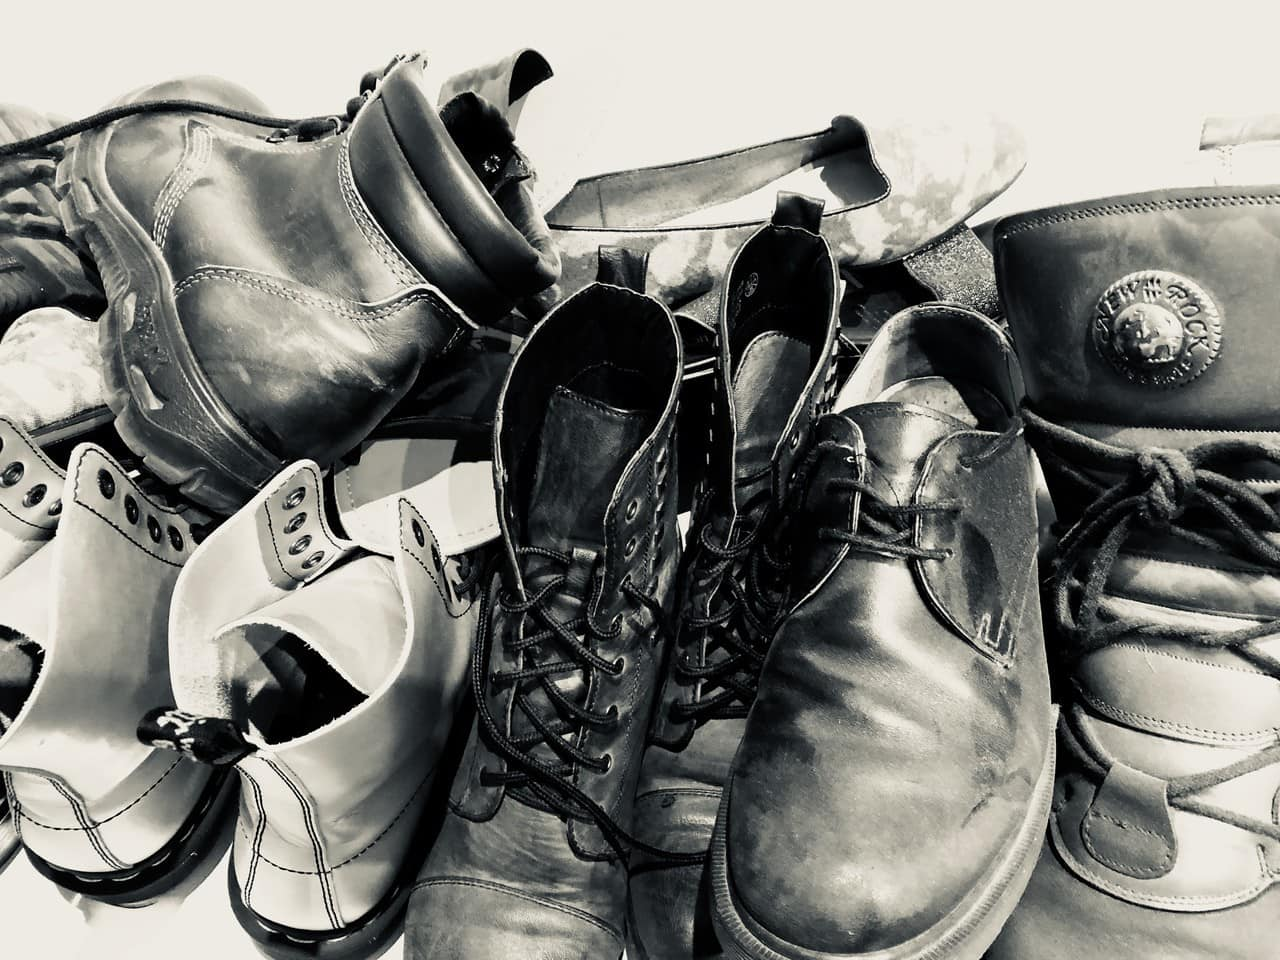 Pile of shoes, mostly boots. Black and white photograph.